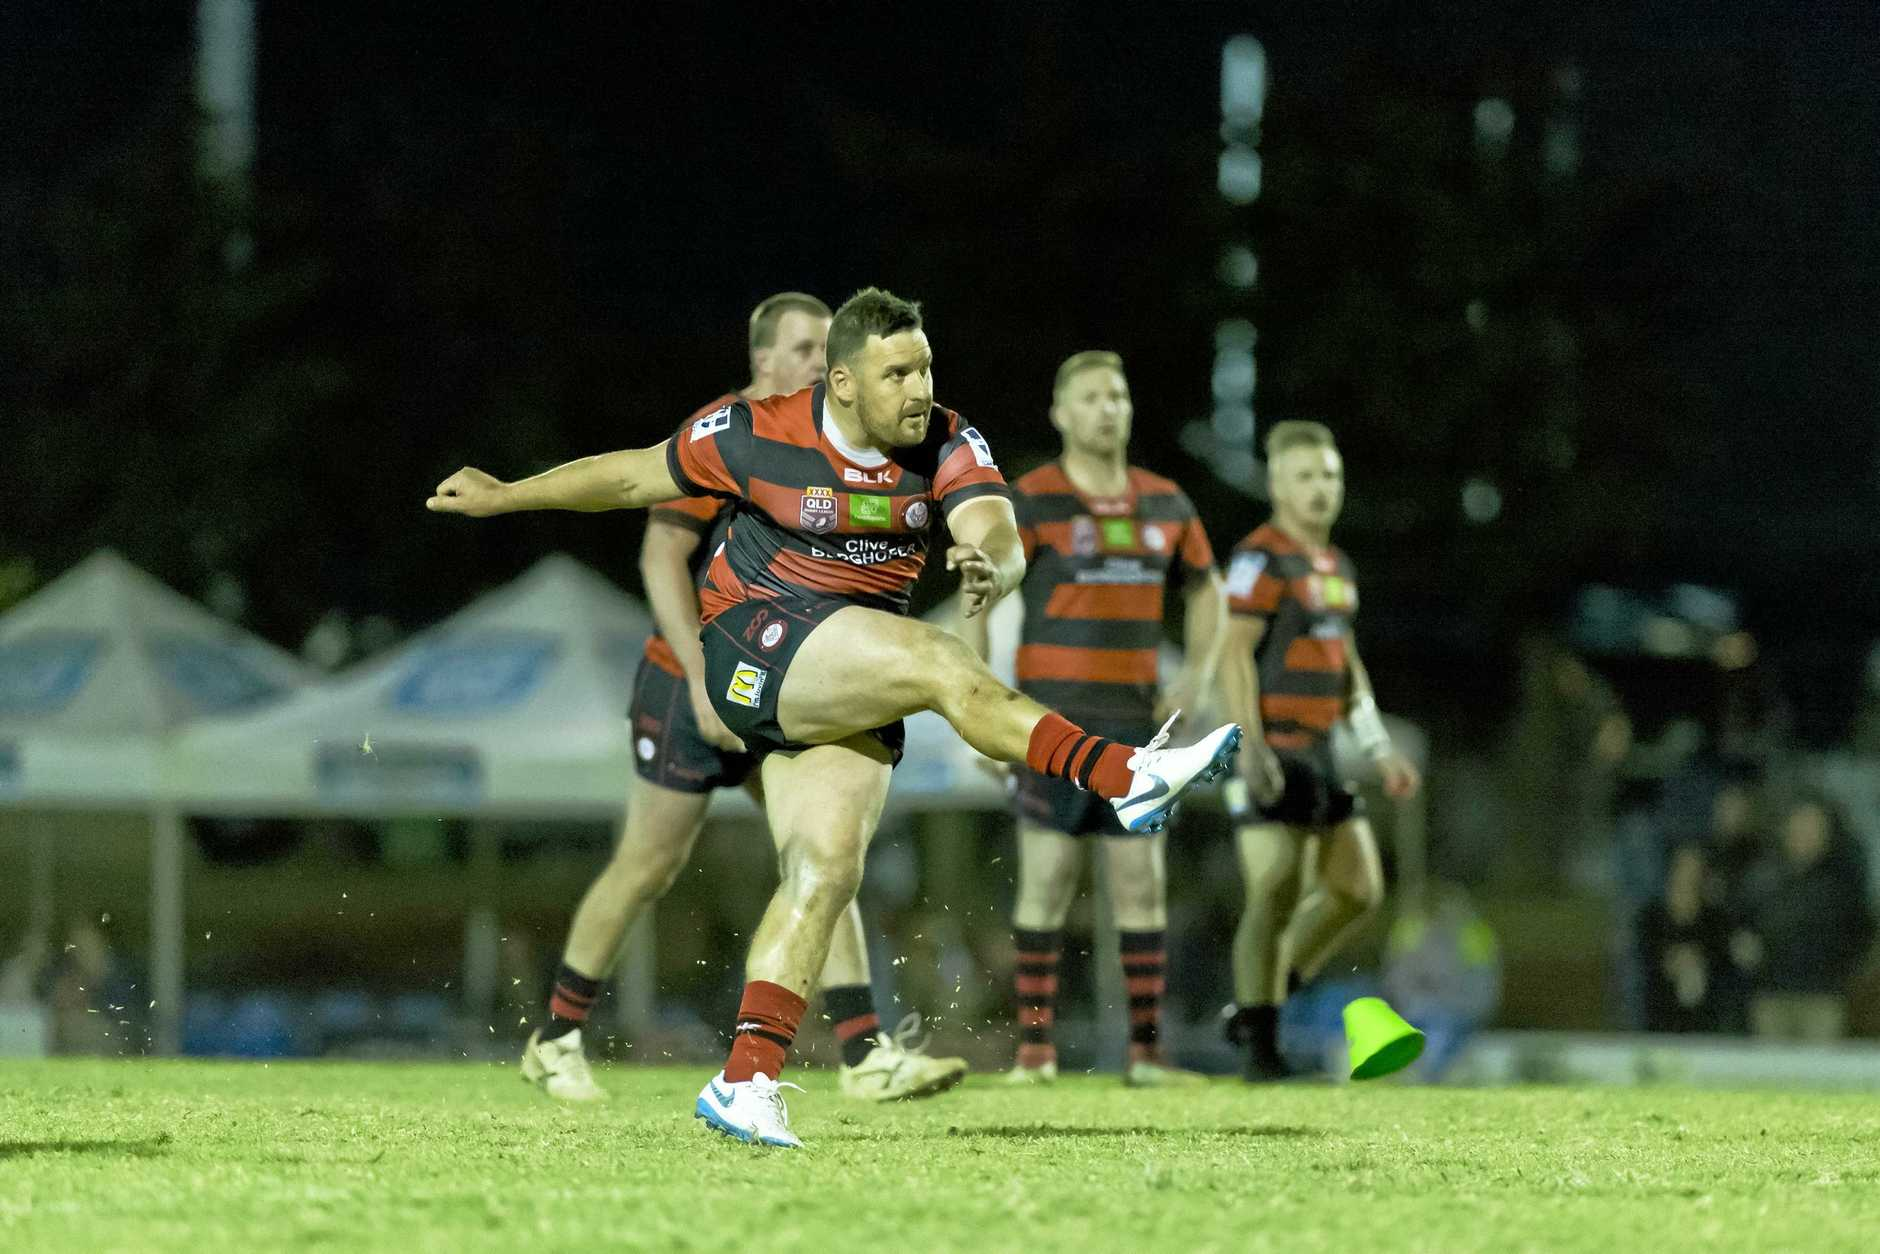 Brett Seymour goal for Valleys Roosters against Wattles in TRL Premiership qualifying final rugby league at Glenholme Park, Saturday, August 18, 2018.